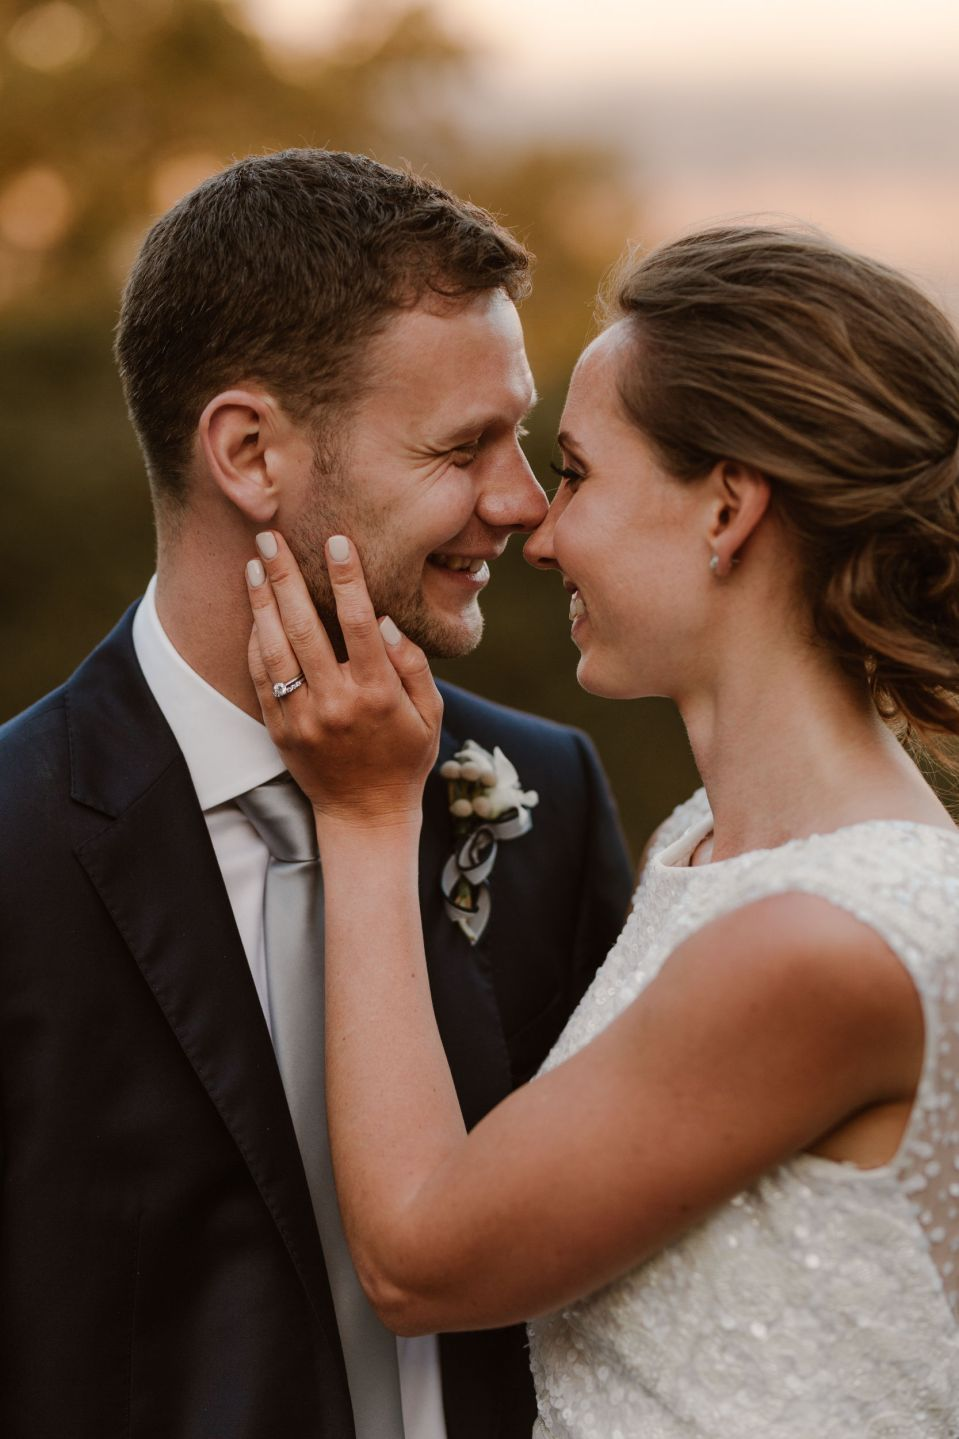 A close up of the bride and groom embracing and smiling.